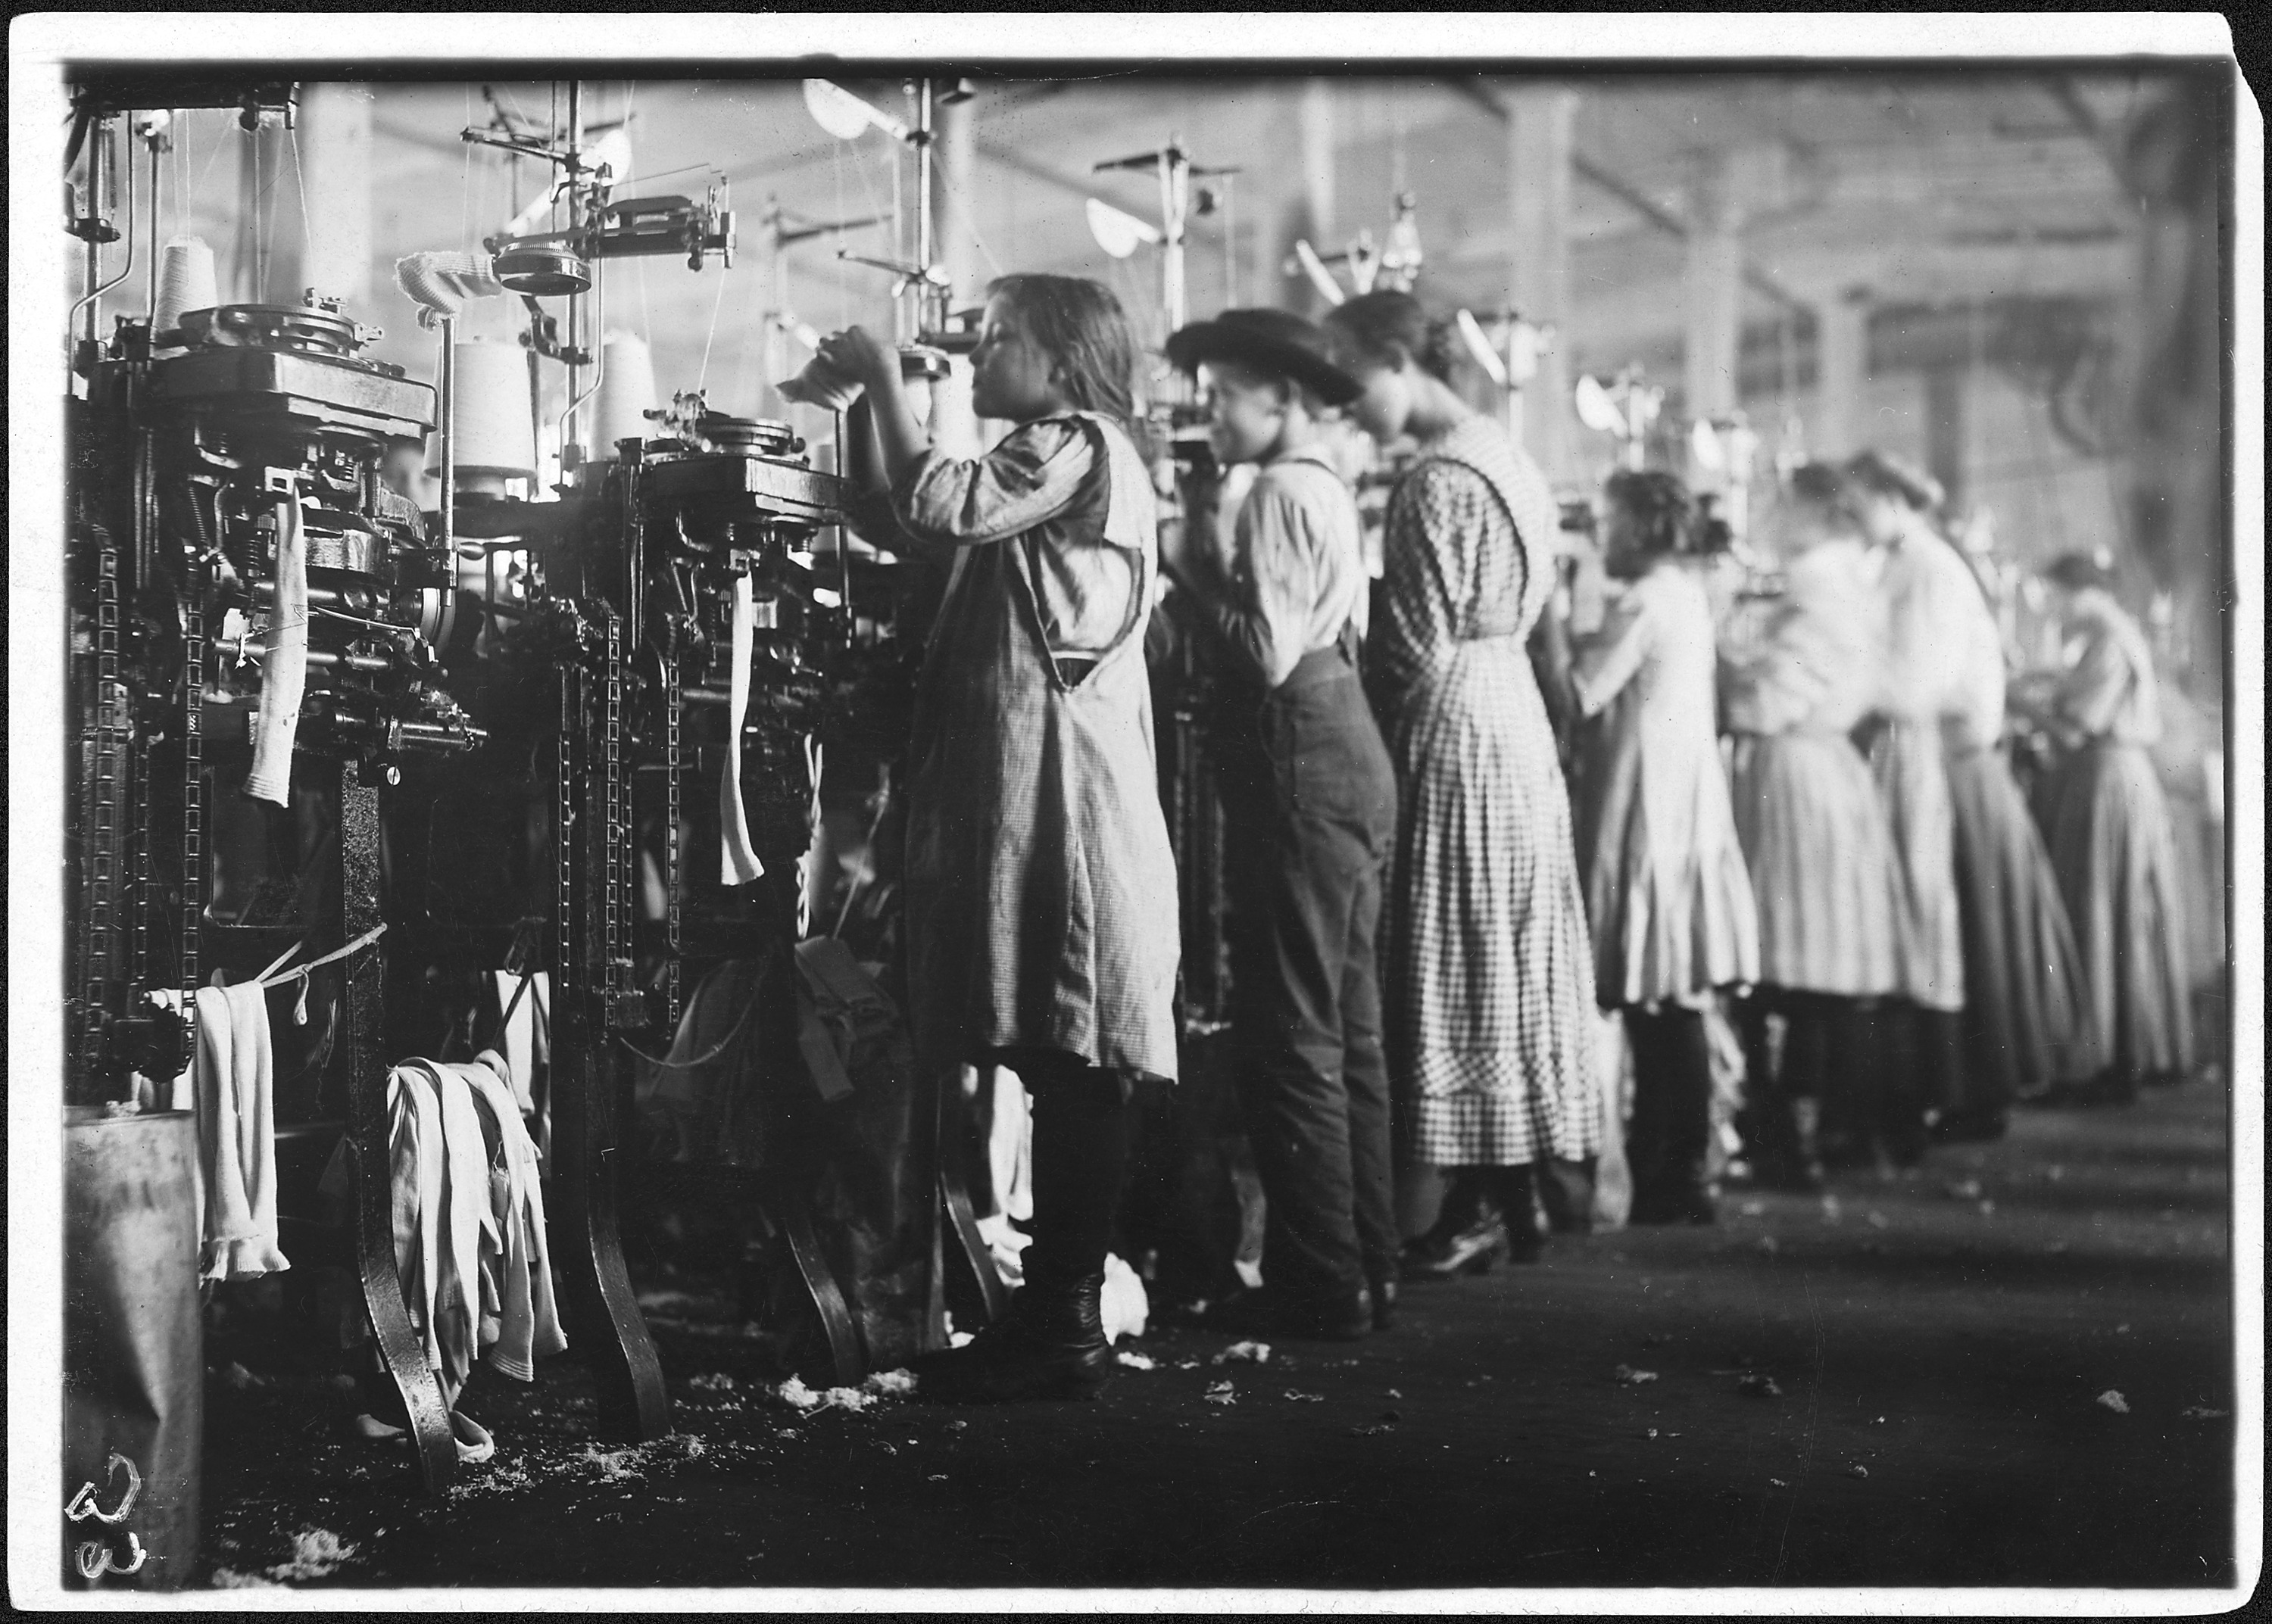 child labor and the second industrial Child labor, 1870 - 1938 the 1900 us census revealed that approximately 2 million children were working in mills, mines, fields, factories, stores, and on city streets.